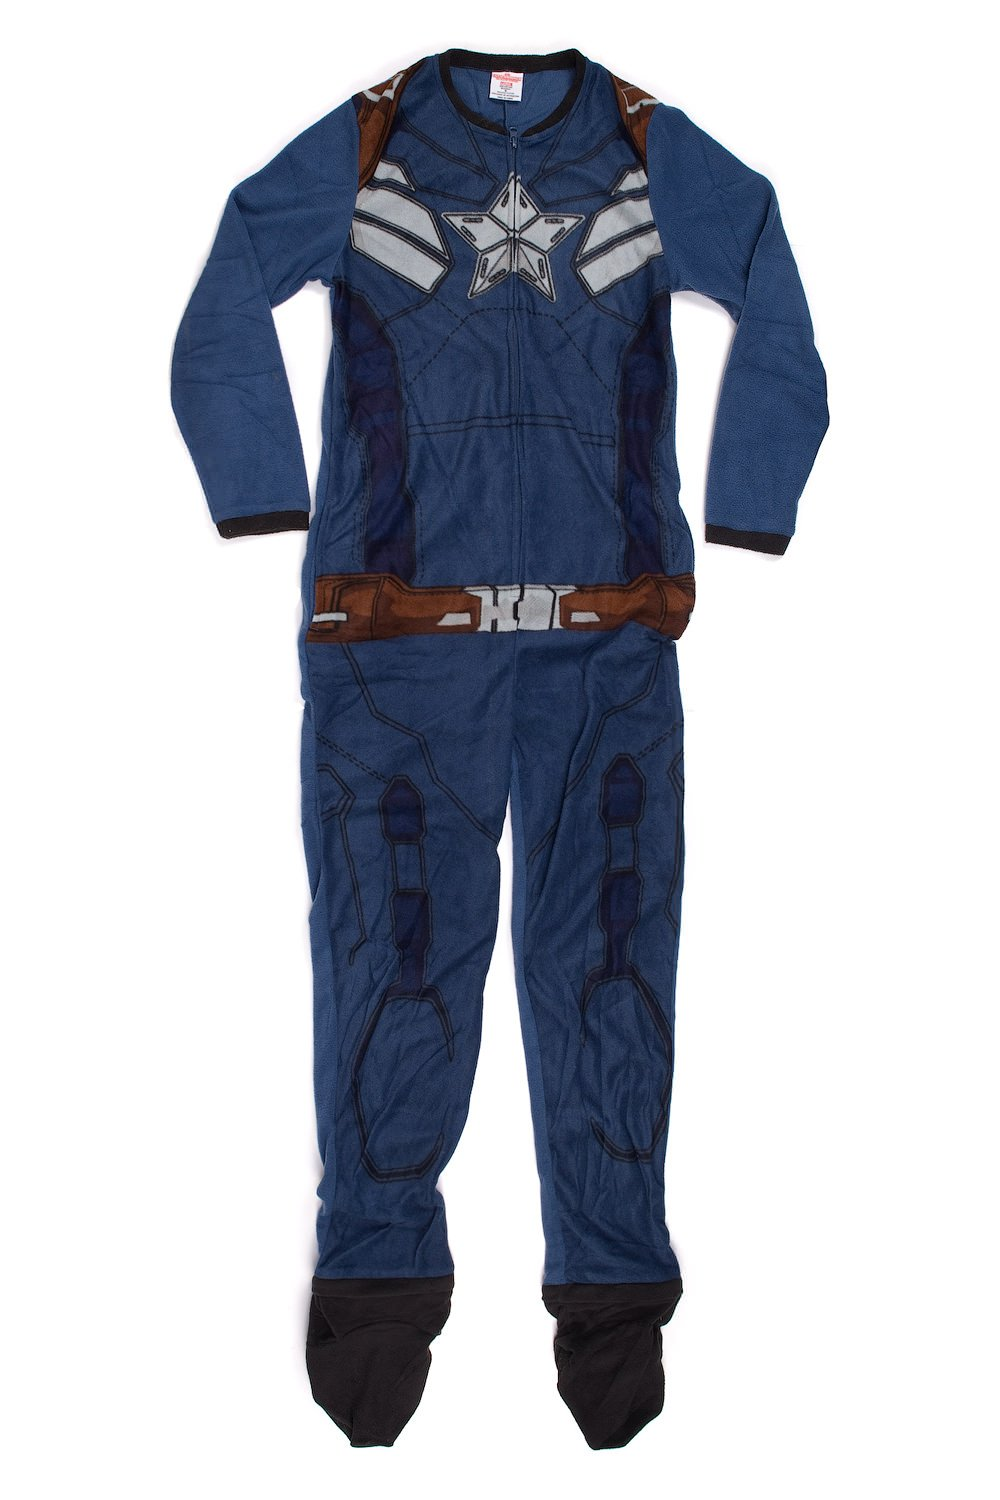 Marvel Comics Captain America Winter Soldier Uniform Onesie Pajama for men